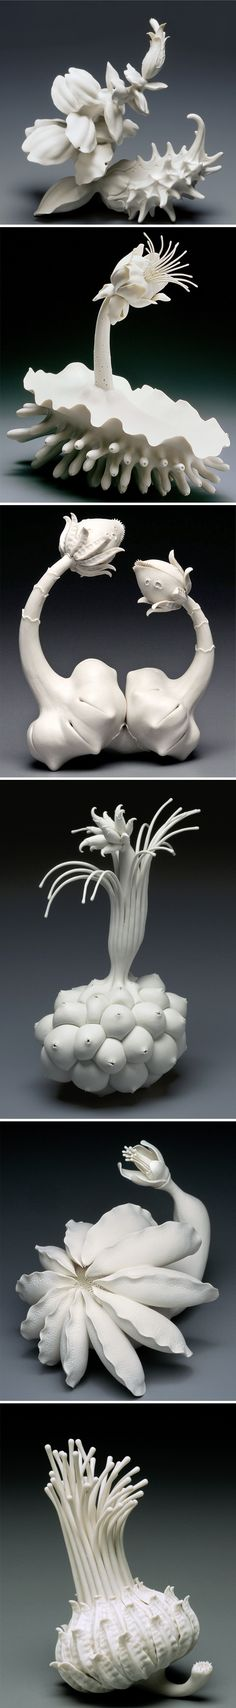 "Suess was still alive, I think he'd have a huge collection of these porcelain ""plants""! This the whimsical, wonderful work of New Jersey based artist Lindsay Feuer. Ah, nature through the beauti Organic Sculpture, Sculpture Clay, Sculptures, What Is Contemporary Art, Polymer Clay Kunst, Organic Art, Artwork Images, Paperclay, Ceramic Flowers"